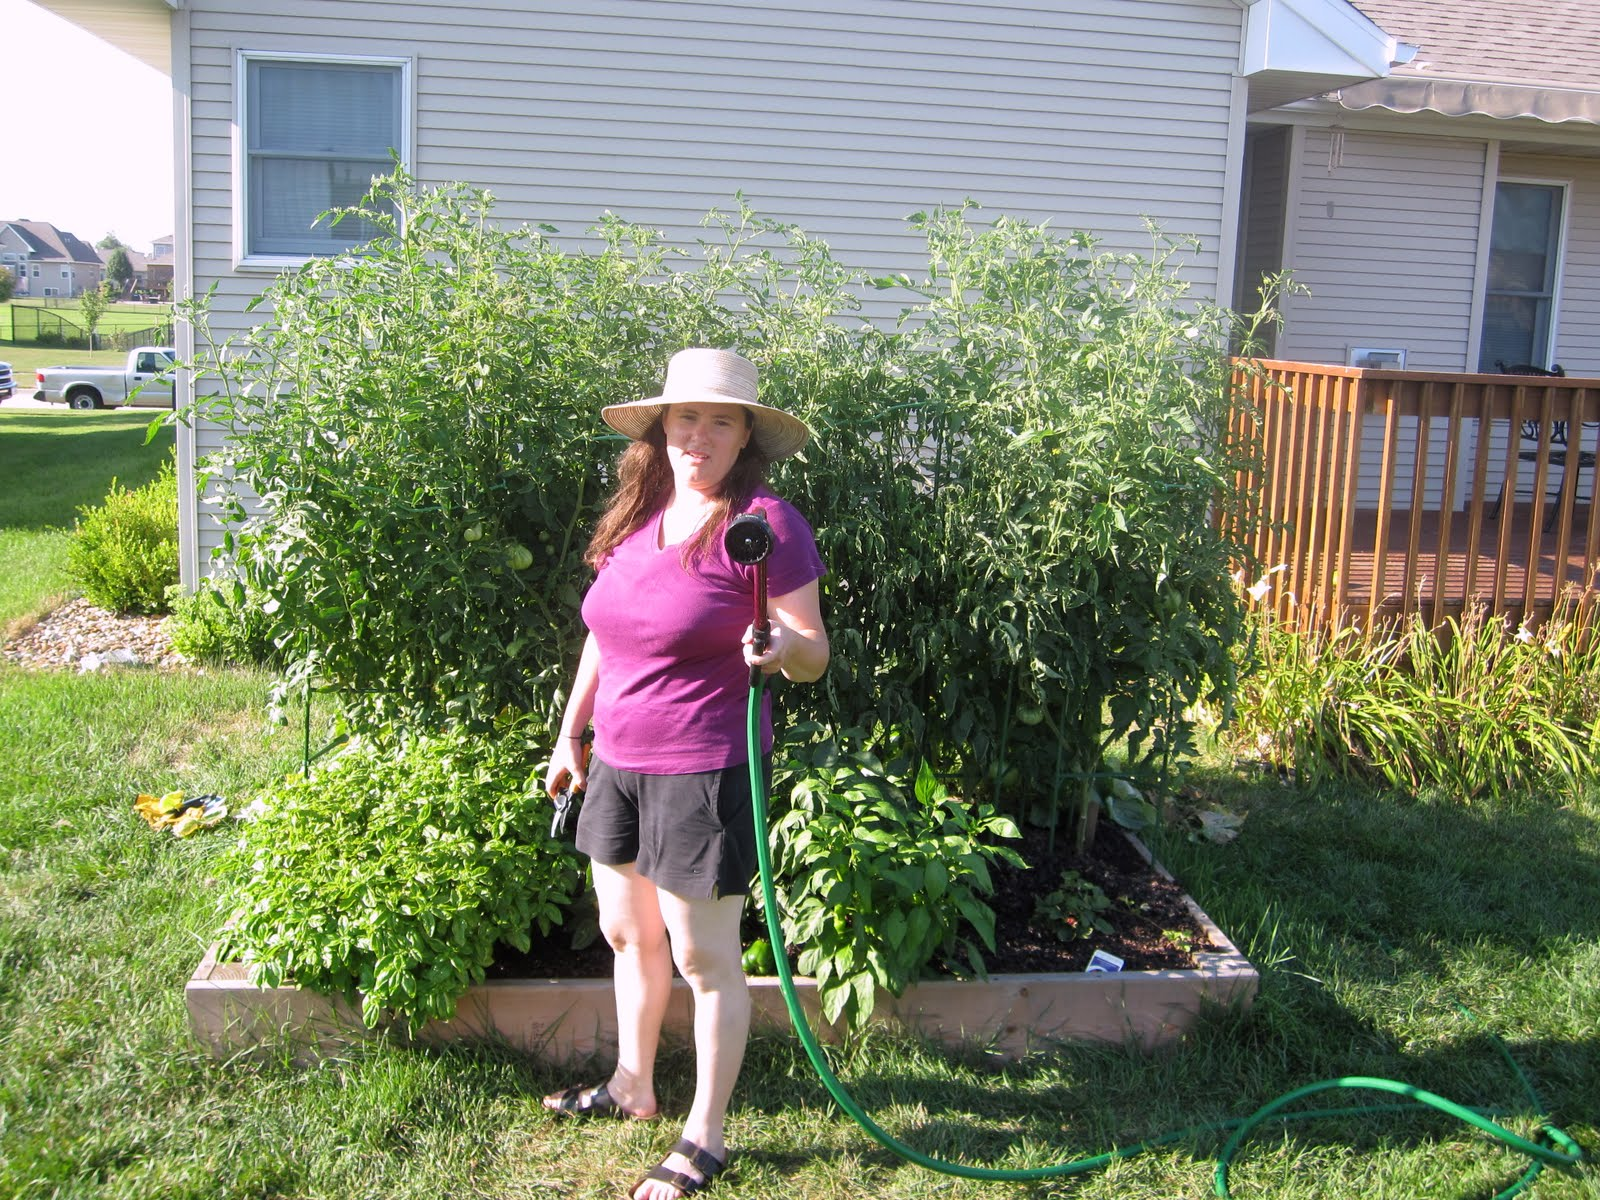 Photograph Of Rebeka Brandishing A Water Hose In Front Of A Garden With Tall  Tomato Plants